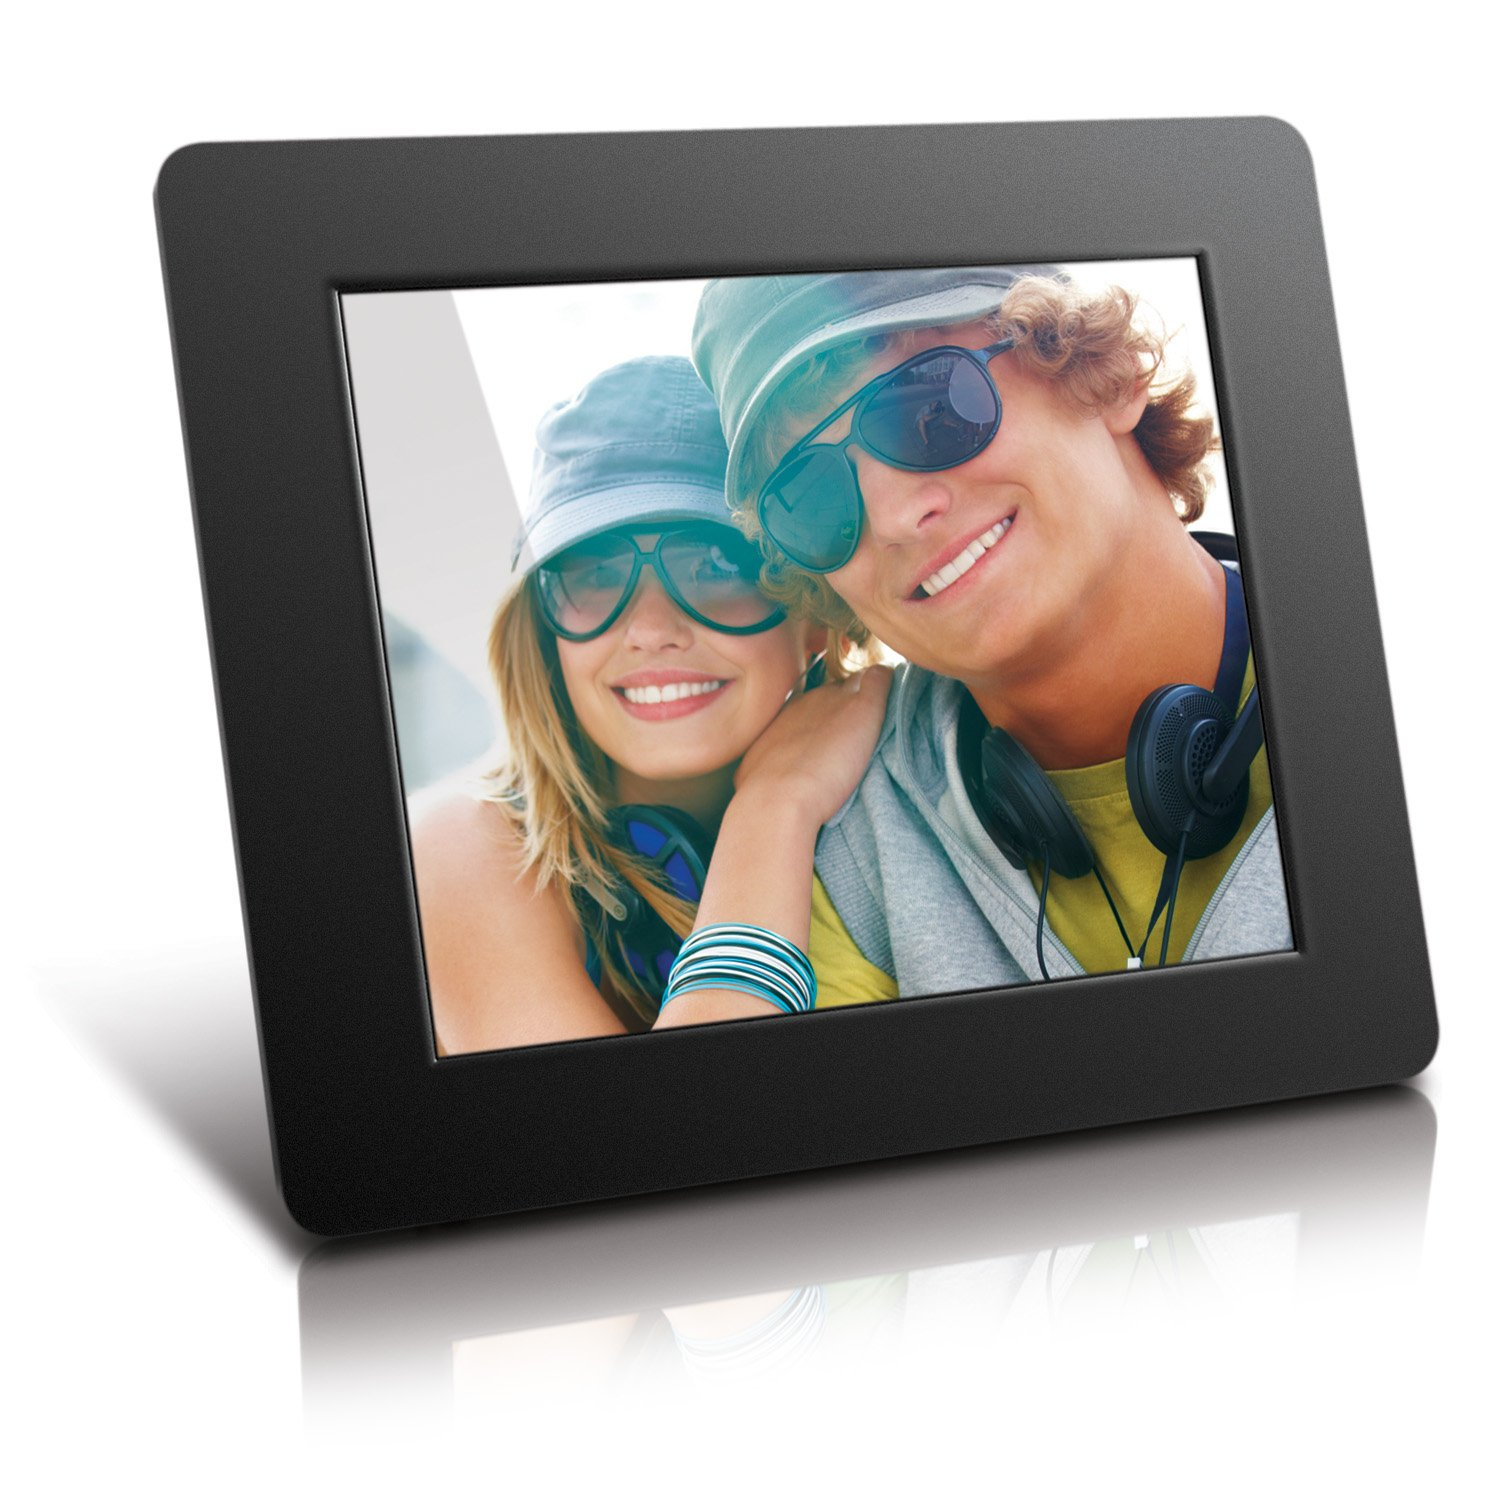 Aluratek (ADPF08SF) 8 Inch Digital Photo Frame - Black by Aluratek